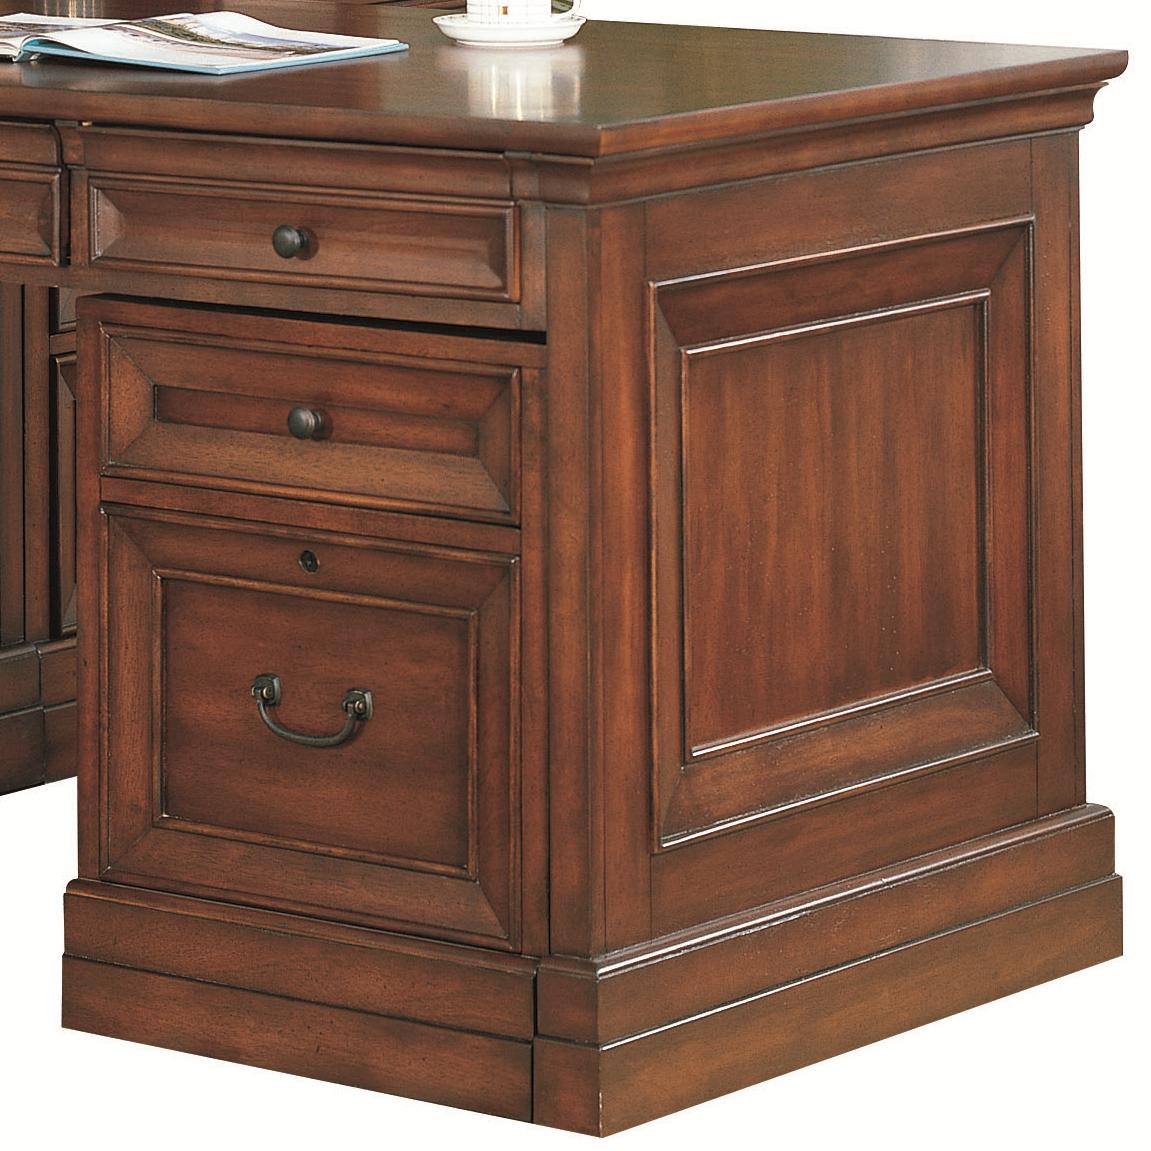 Aspenhome Richmond Drawer Unit - Item Number: I40-341D